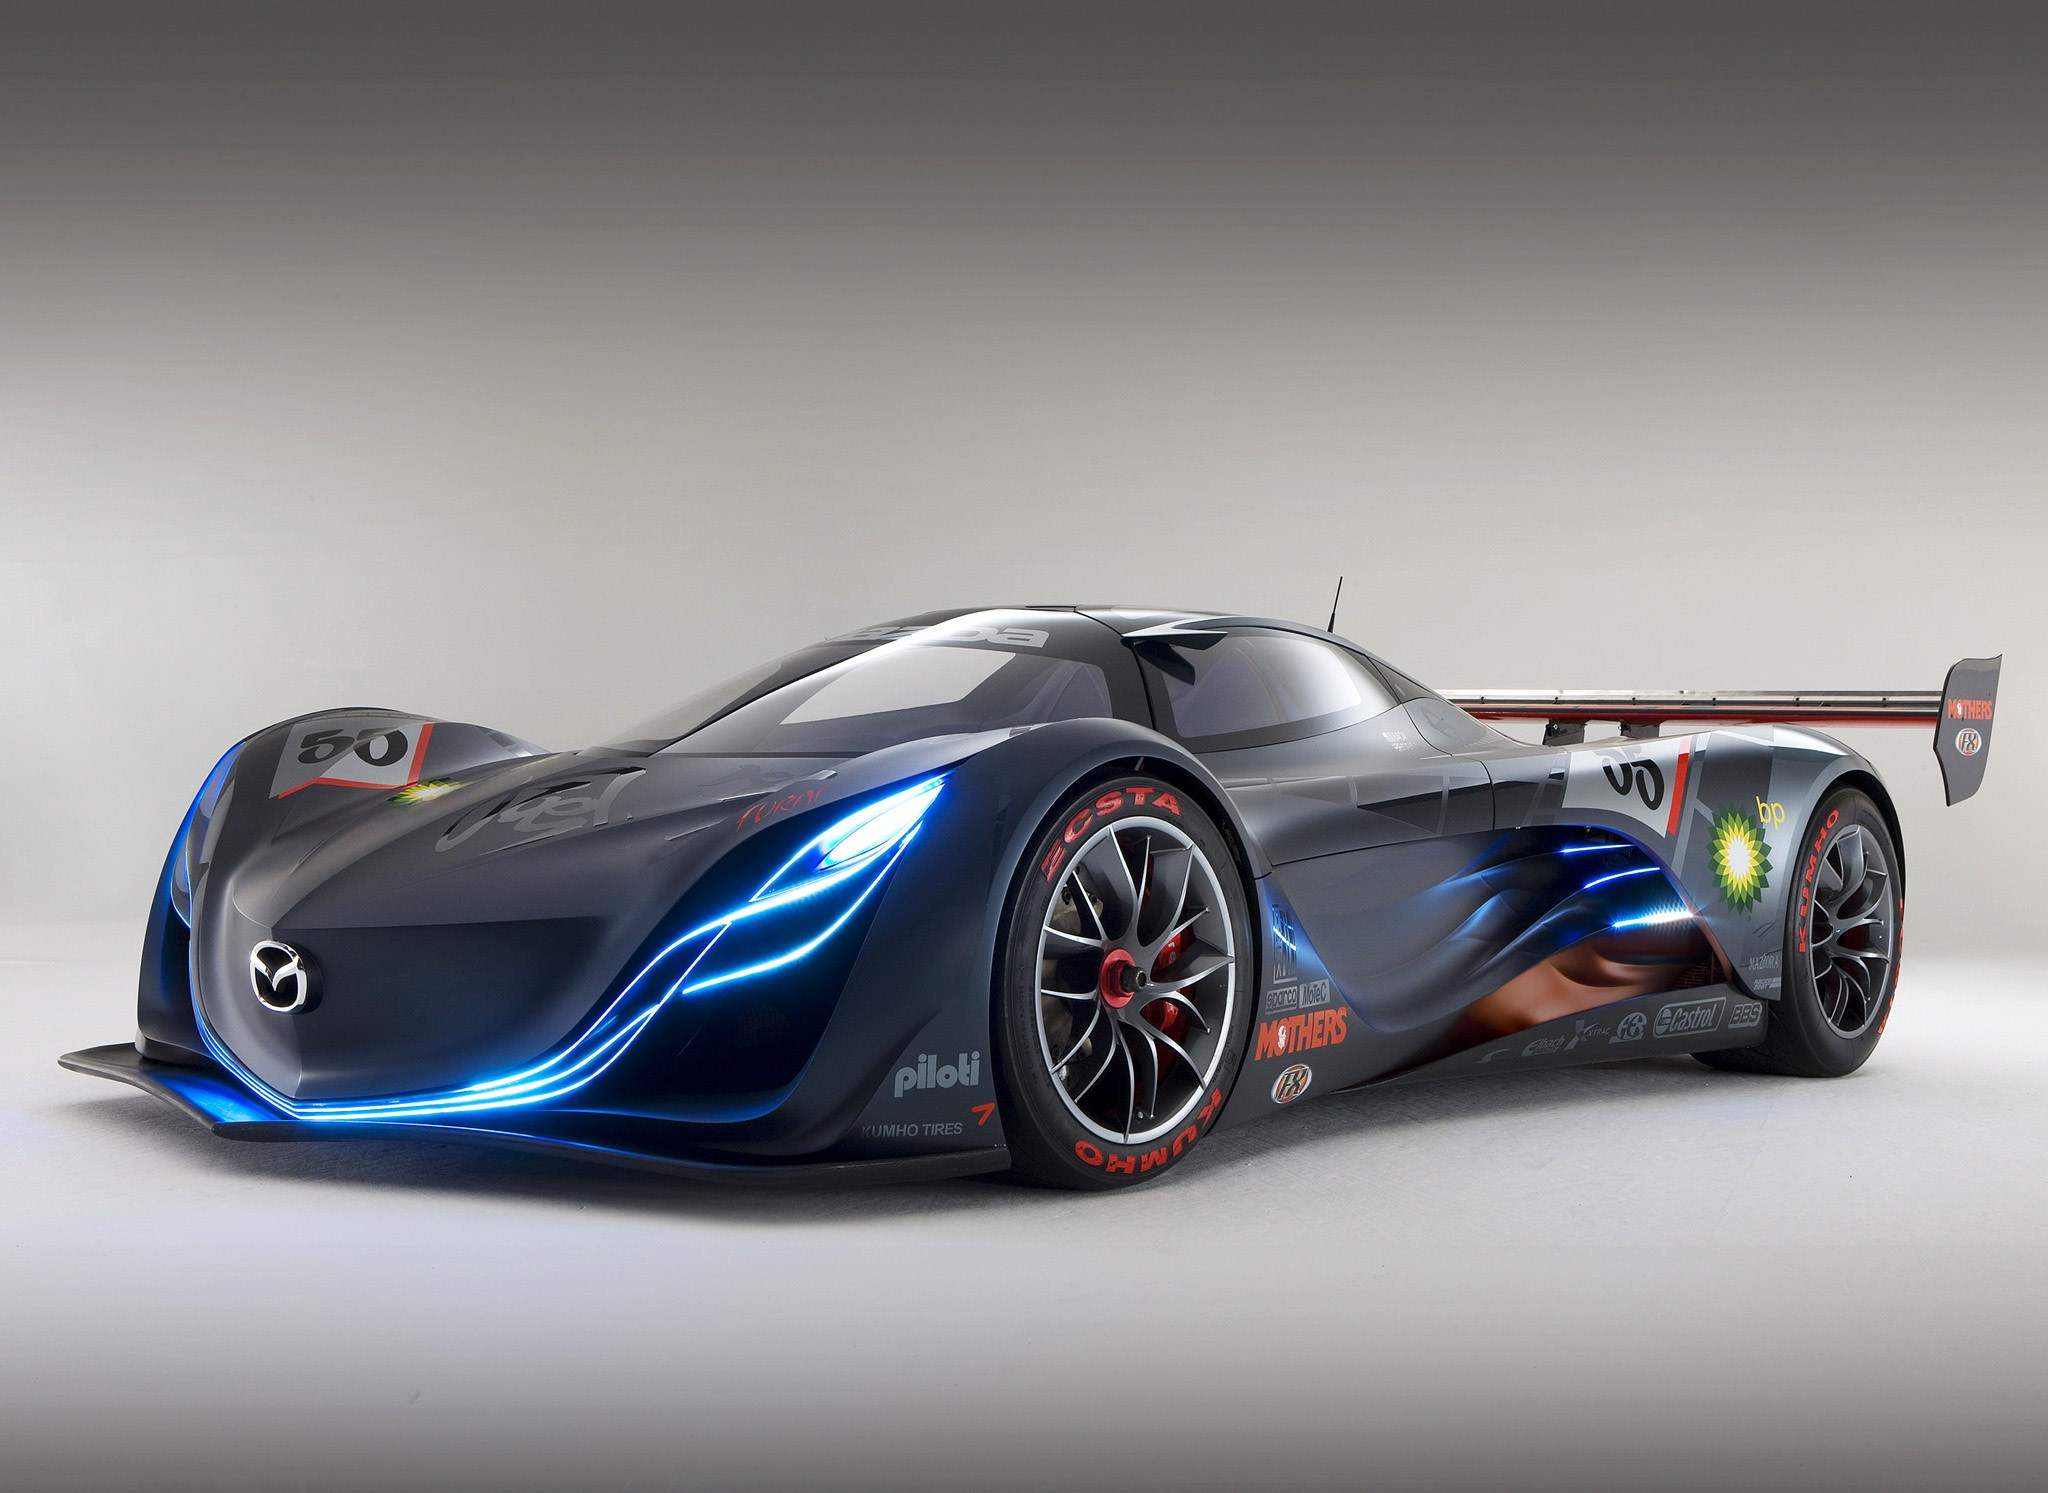 mazda cars news mazda furai concept reduced to shell. Black Bedroom Furniture Sets. Home Design Ideas